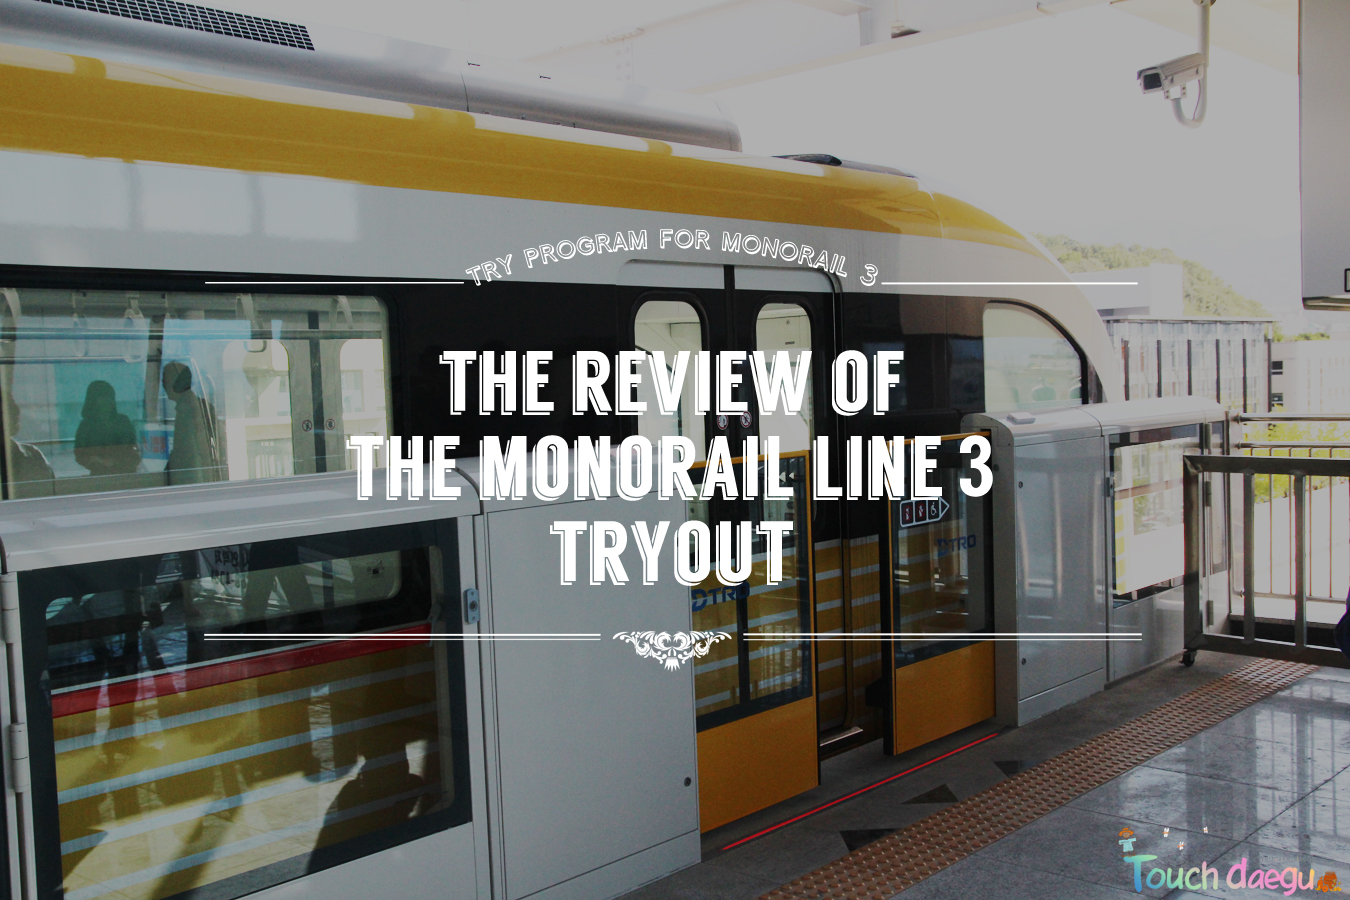 The Review of the Monorail Line 3 Tryout